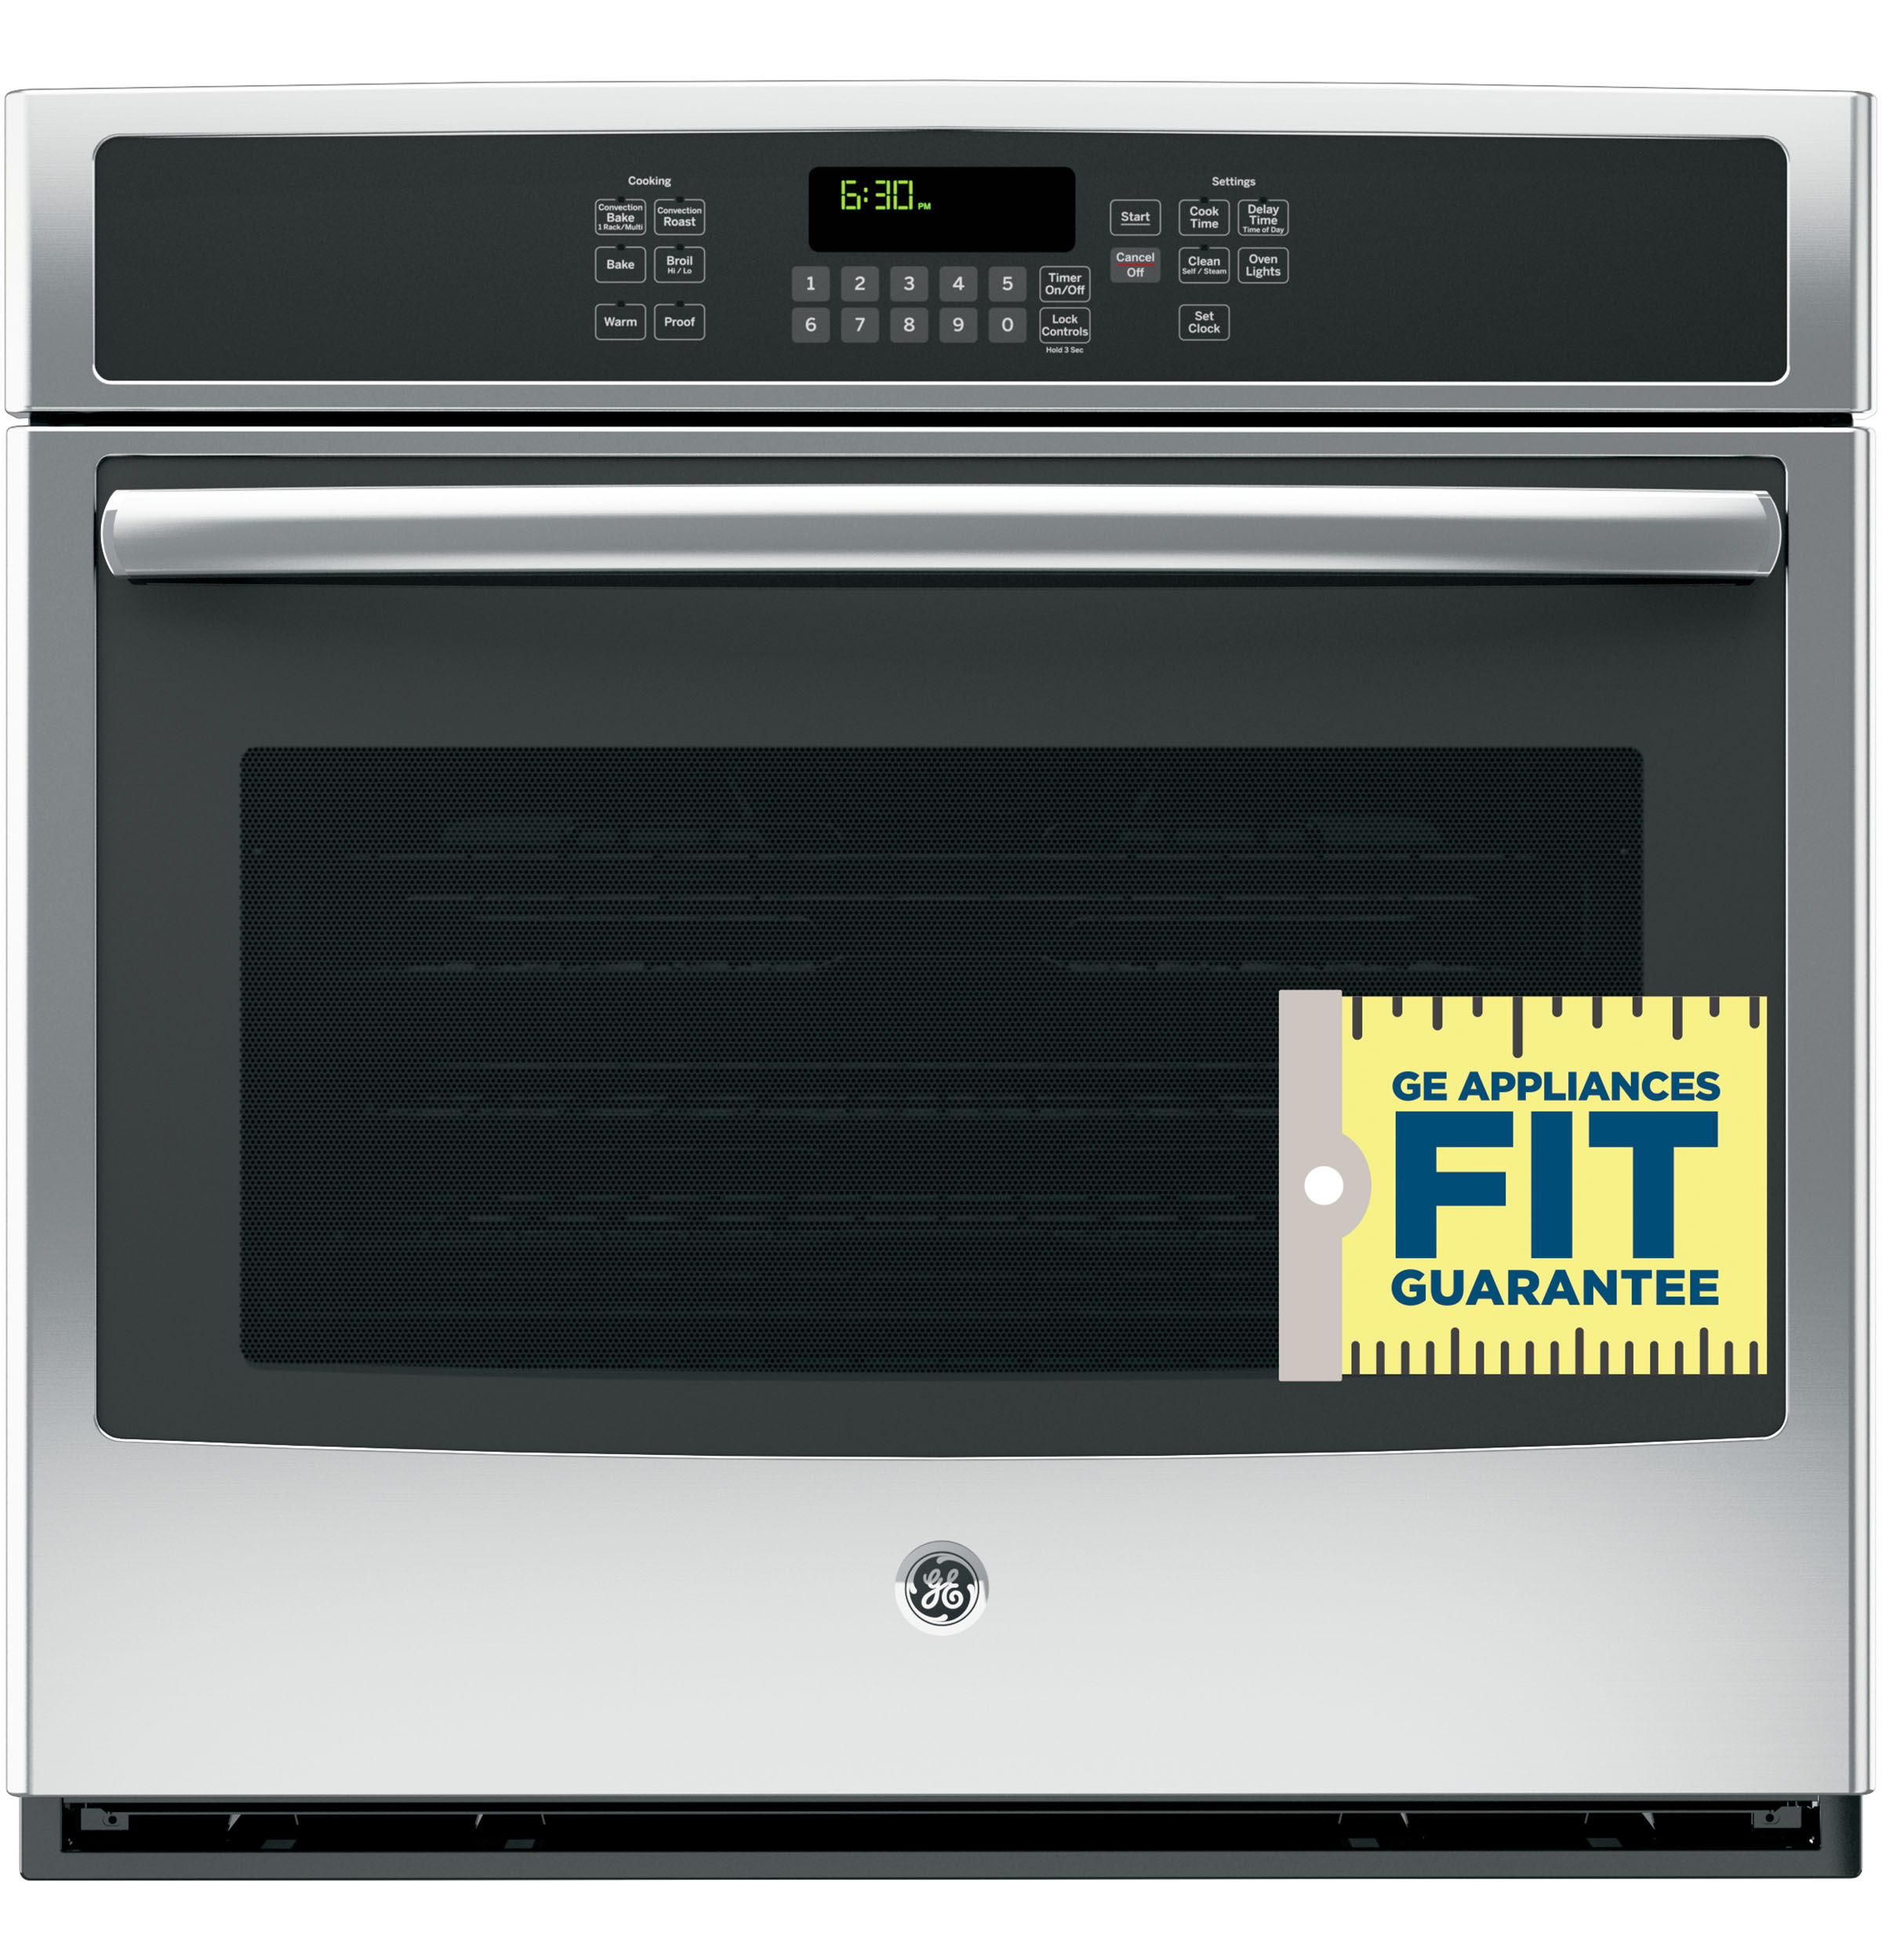 Ge 30 Built In Single Convection Wall Oven Jt5000sfss Toaster Switch Diagram On Schematic Diagrams For Microwave 1 Of 11